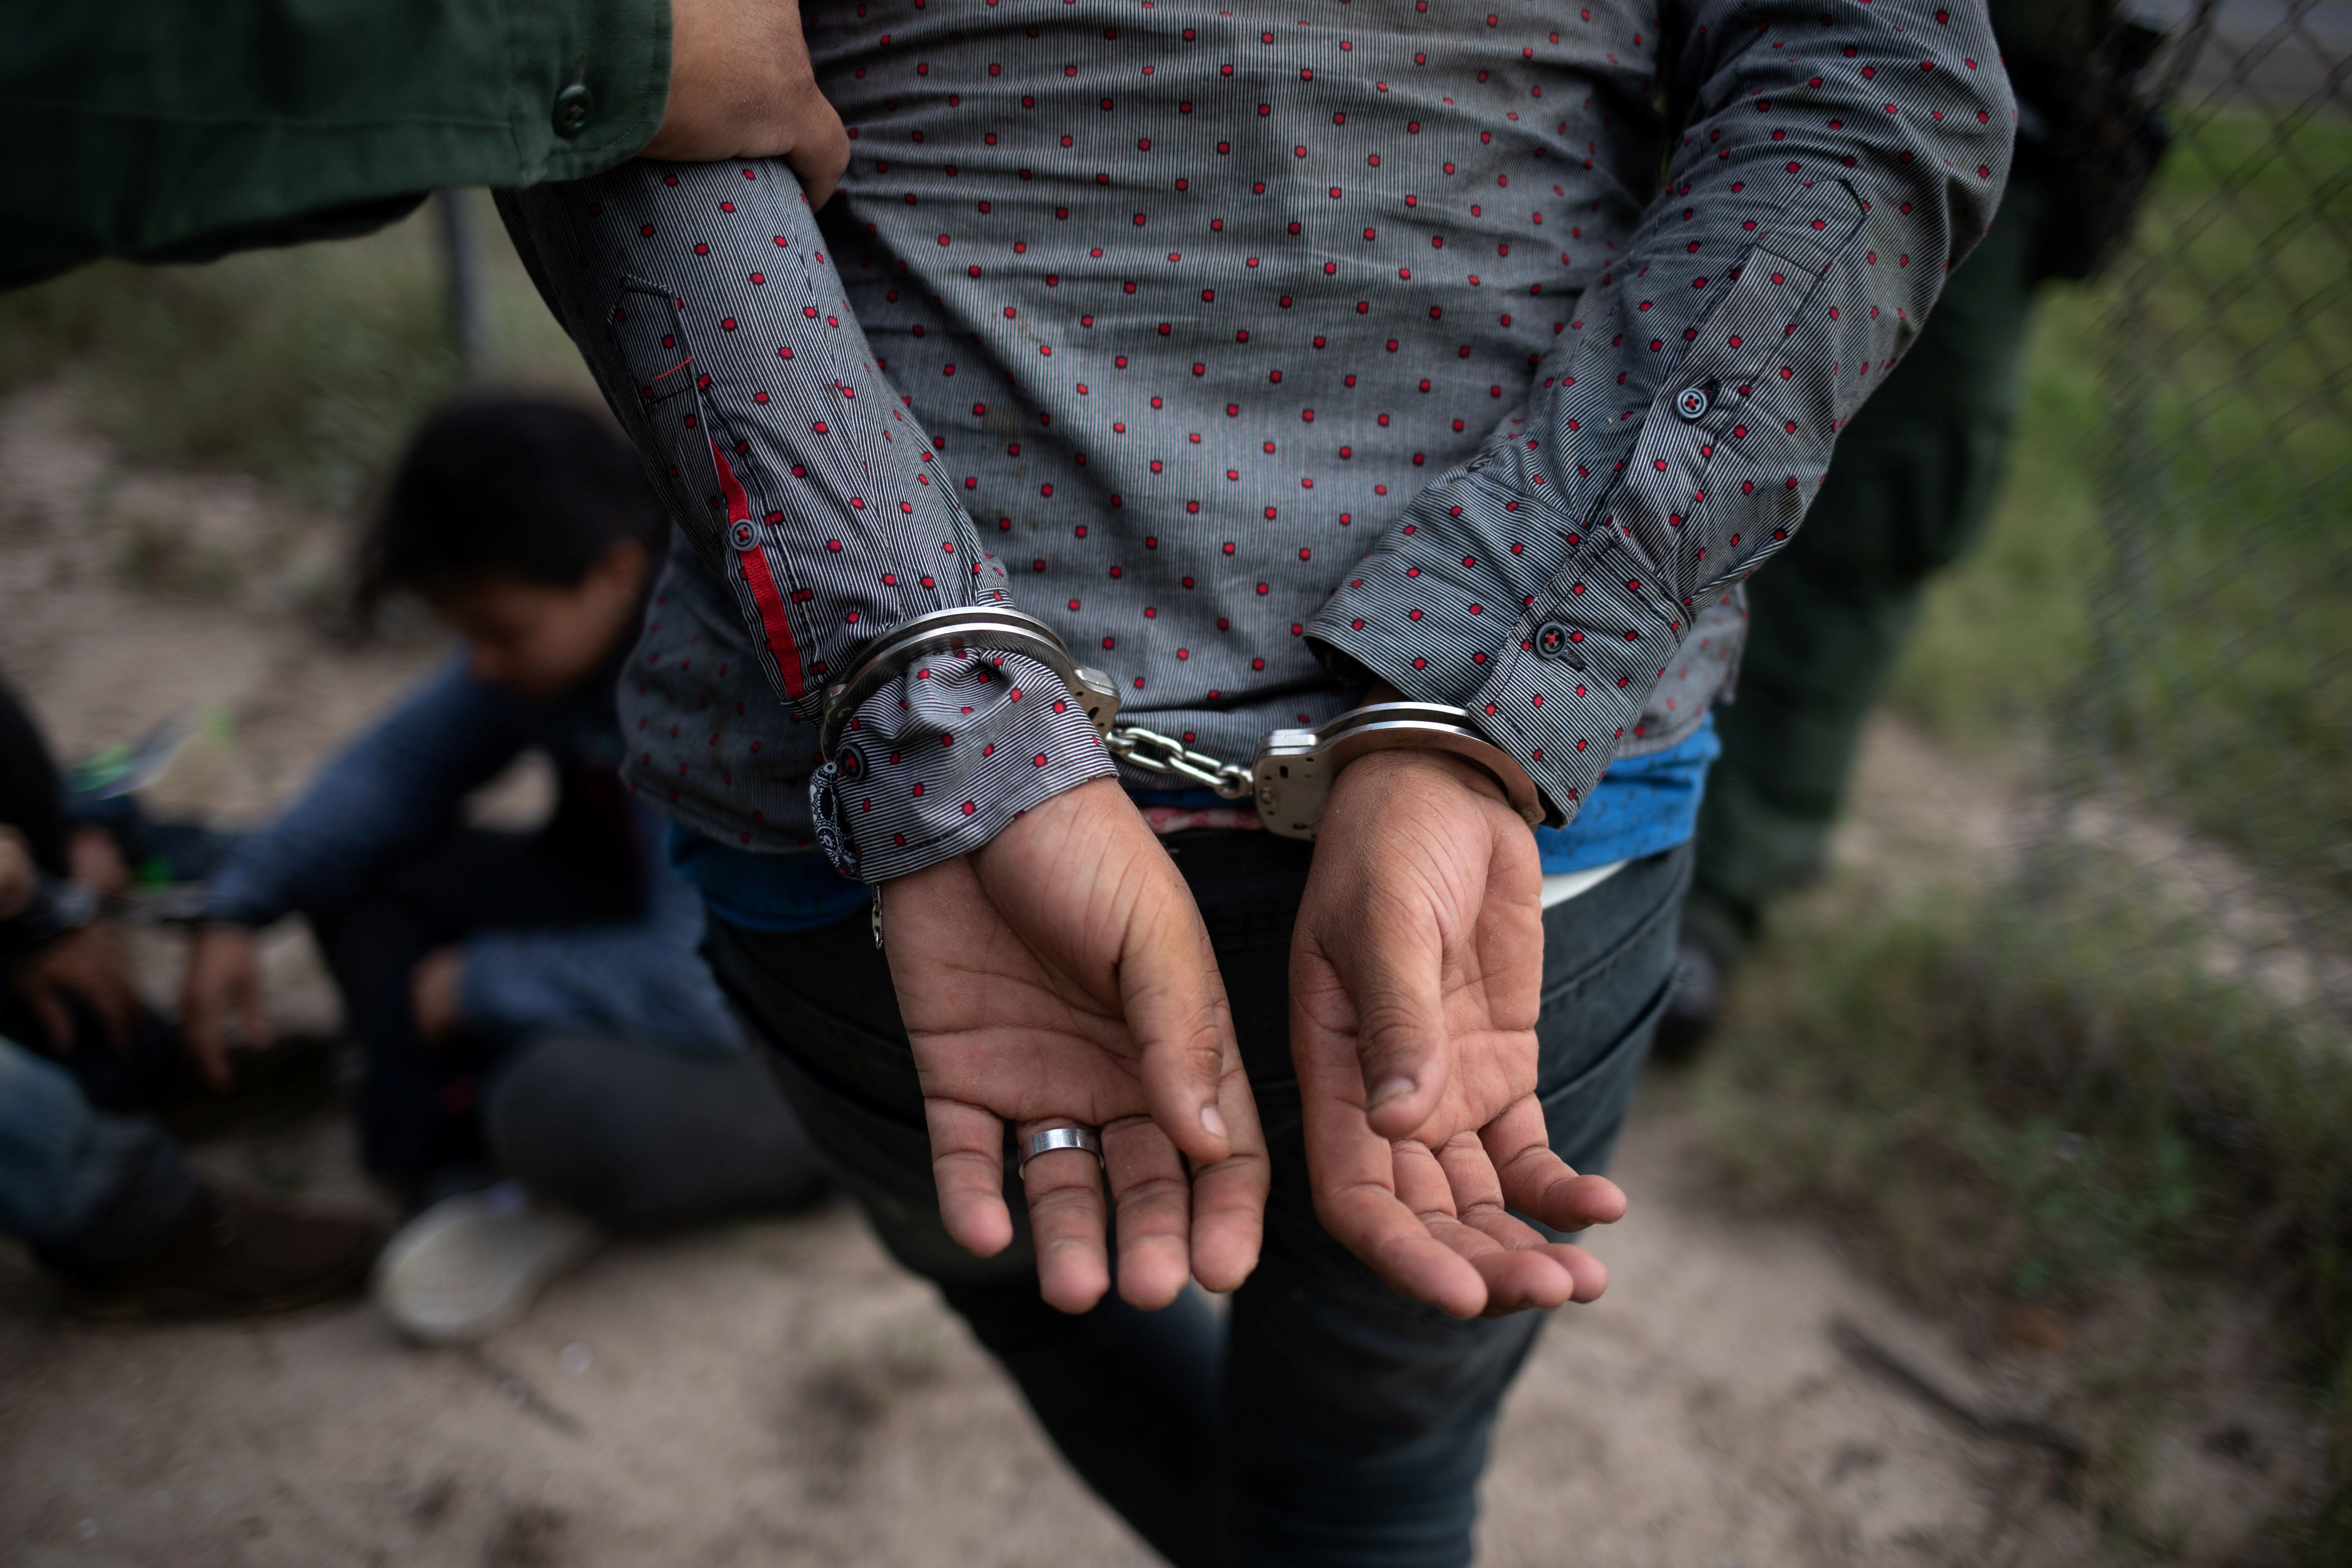 A border patrol agent apprehends a man after he and others were caught illegally crossing into the U.S. border from Mexico near McAllen, Texas, U.S., May 2, 2018.  REUTERS/Adrees Latif